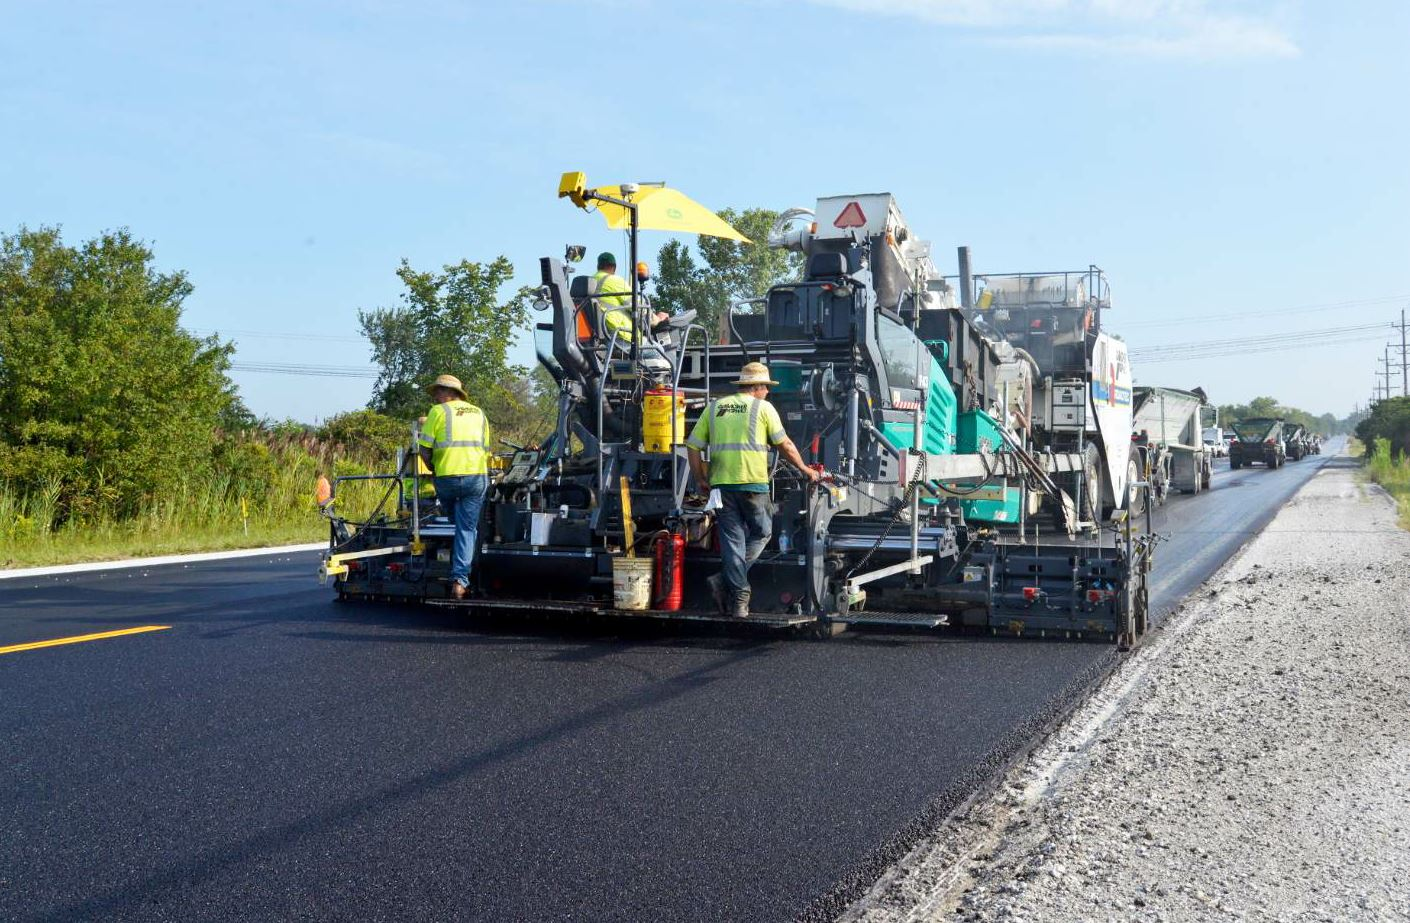 Gallagher Asphalt paved Illinois State Route 50 two lanes wide at a time.